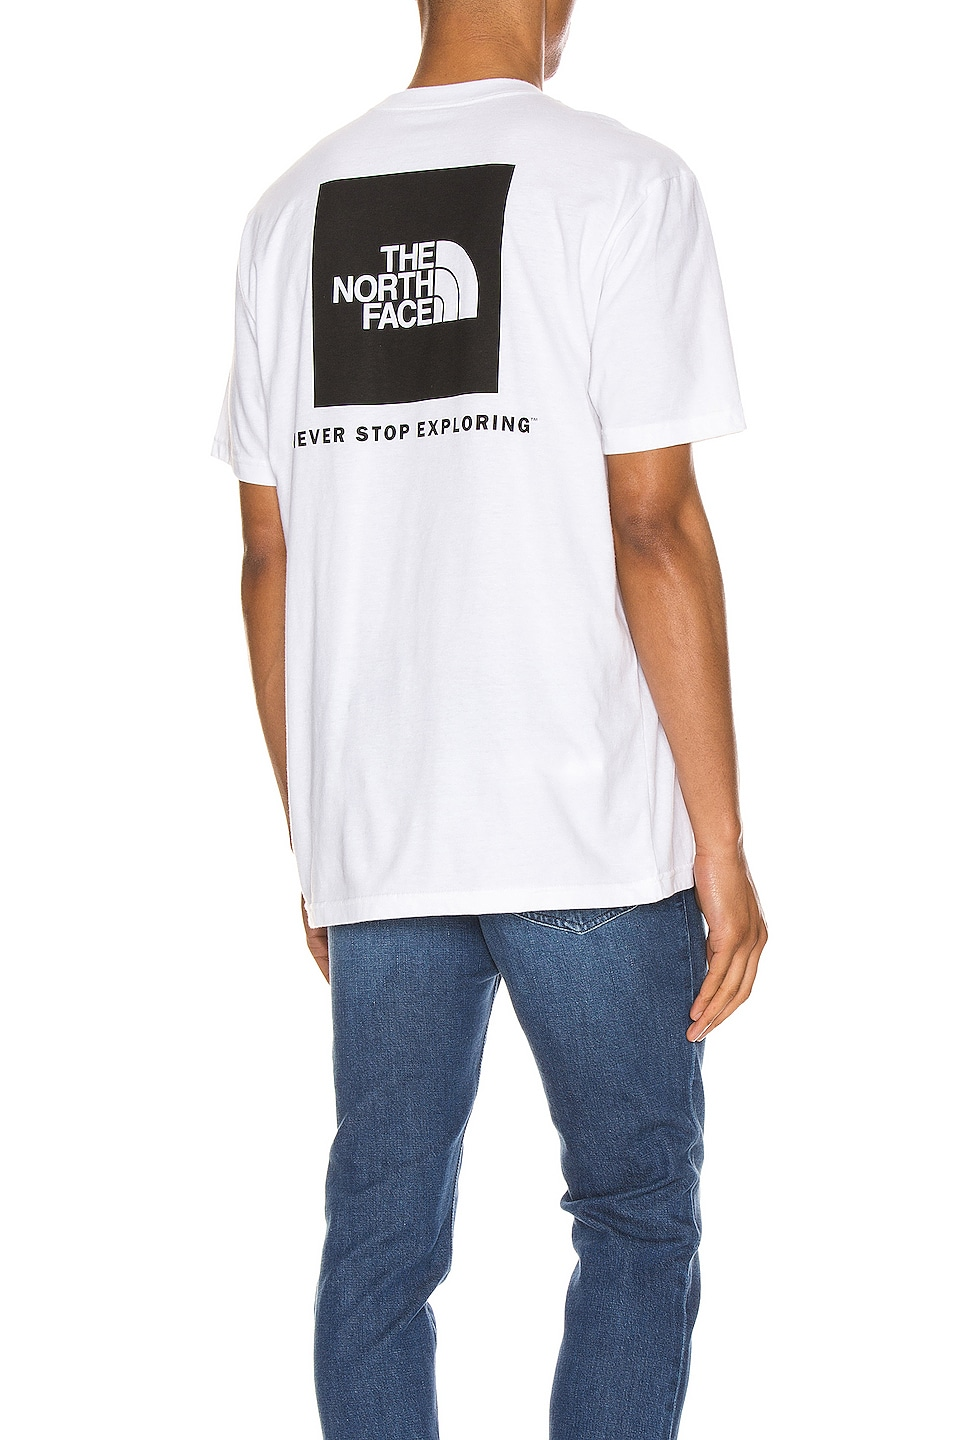 Image 1 of The North Face Red Box Tee in TNF White